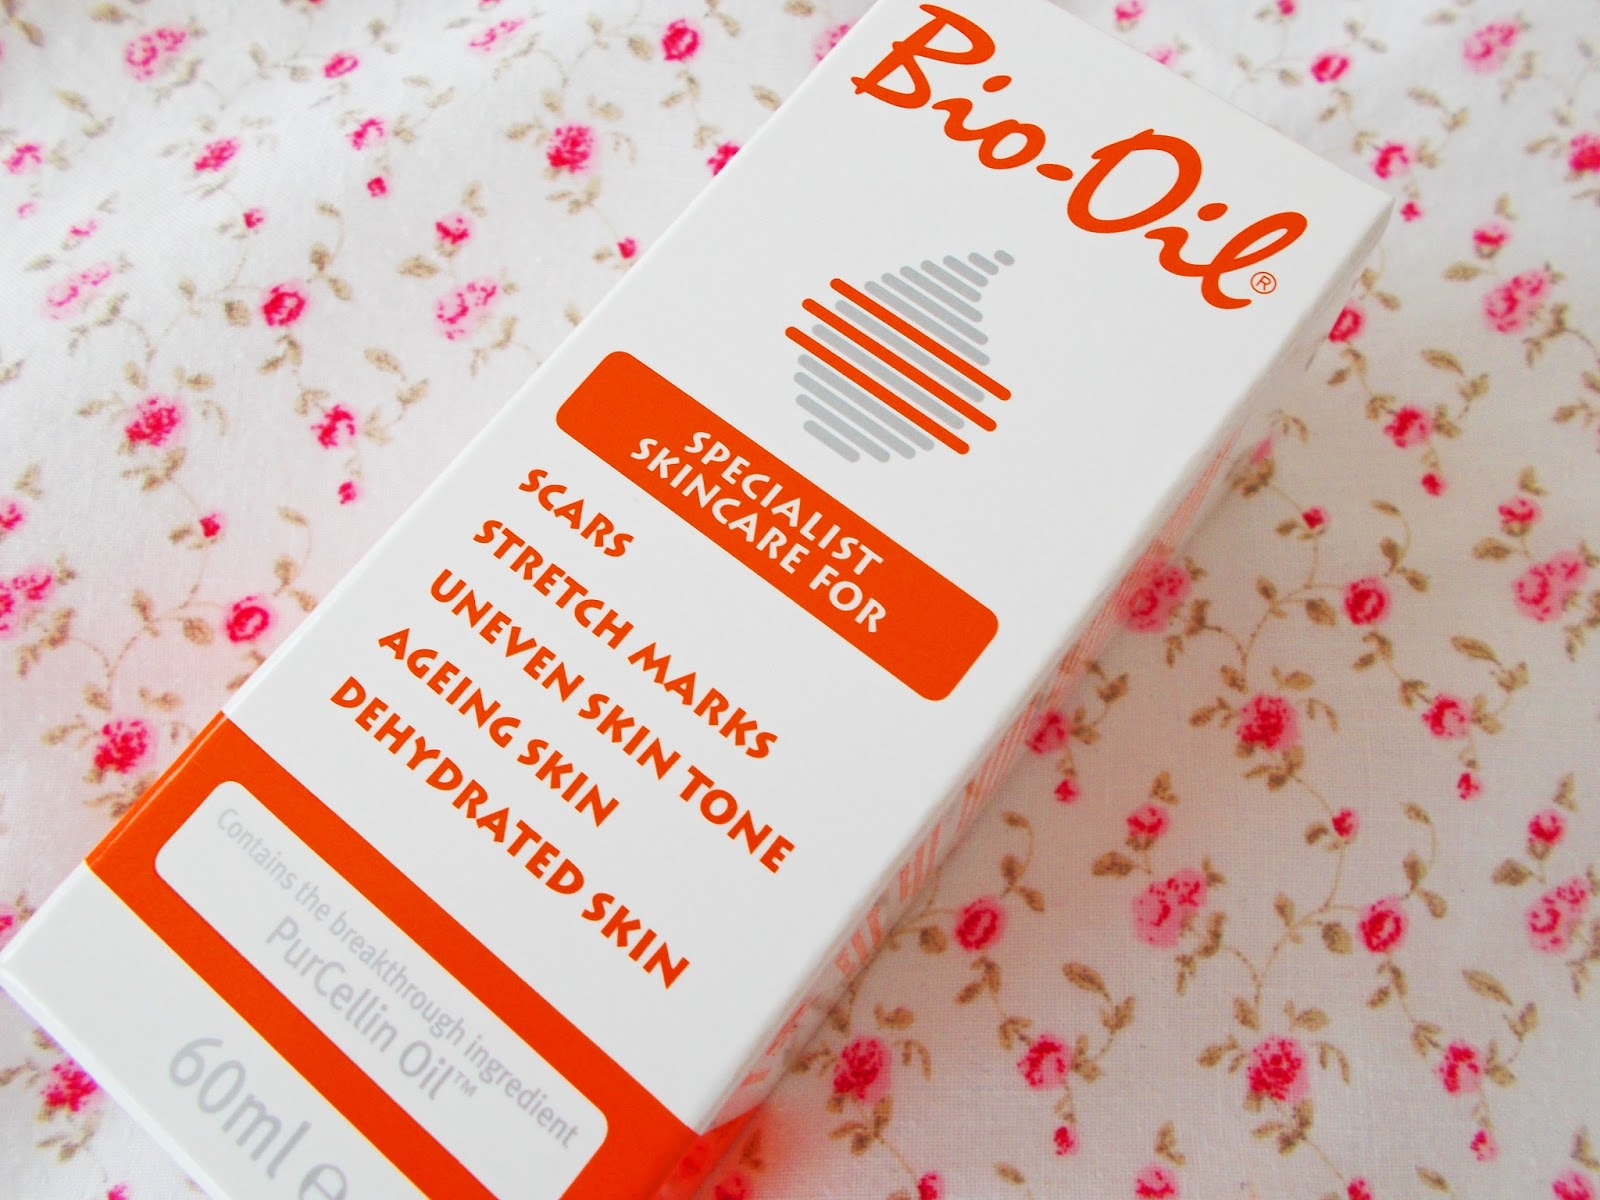 My thoughts on the Bio Oil skincare